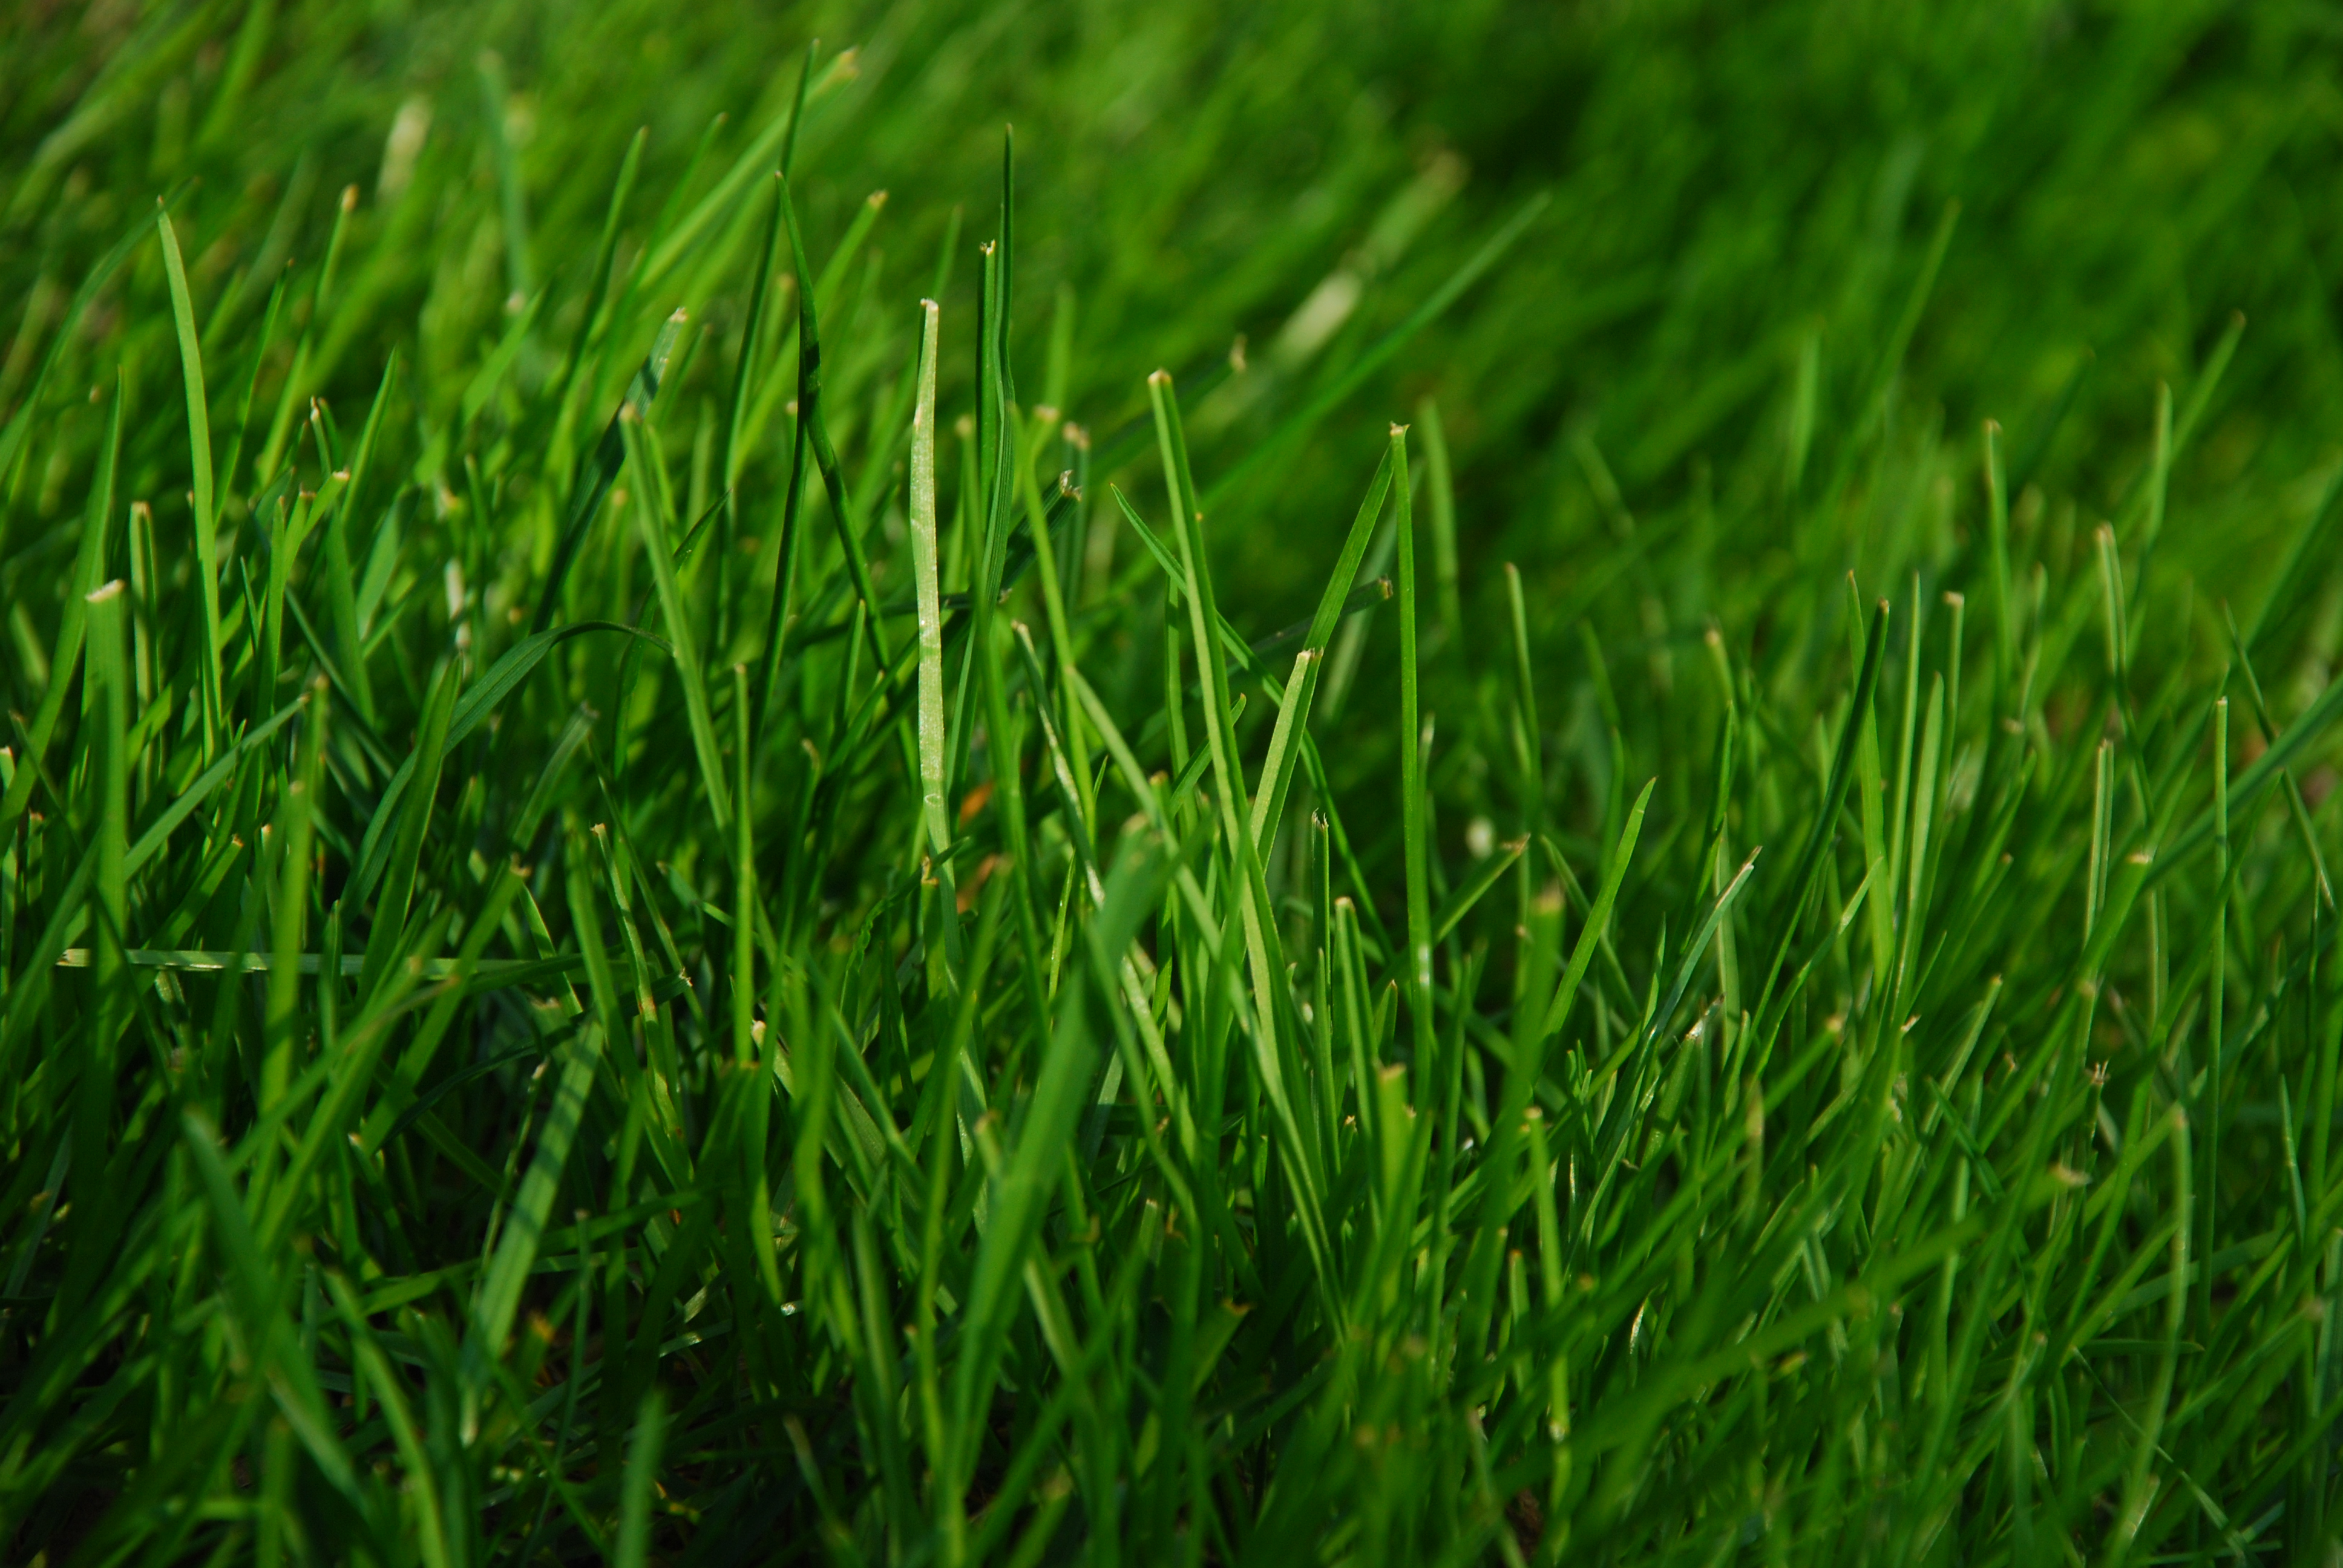 free photo spring green grass plant nature outdoors free